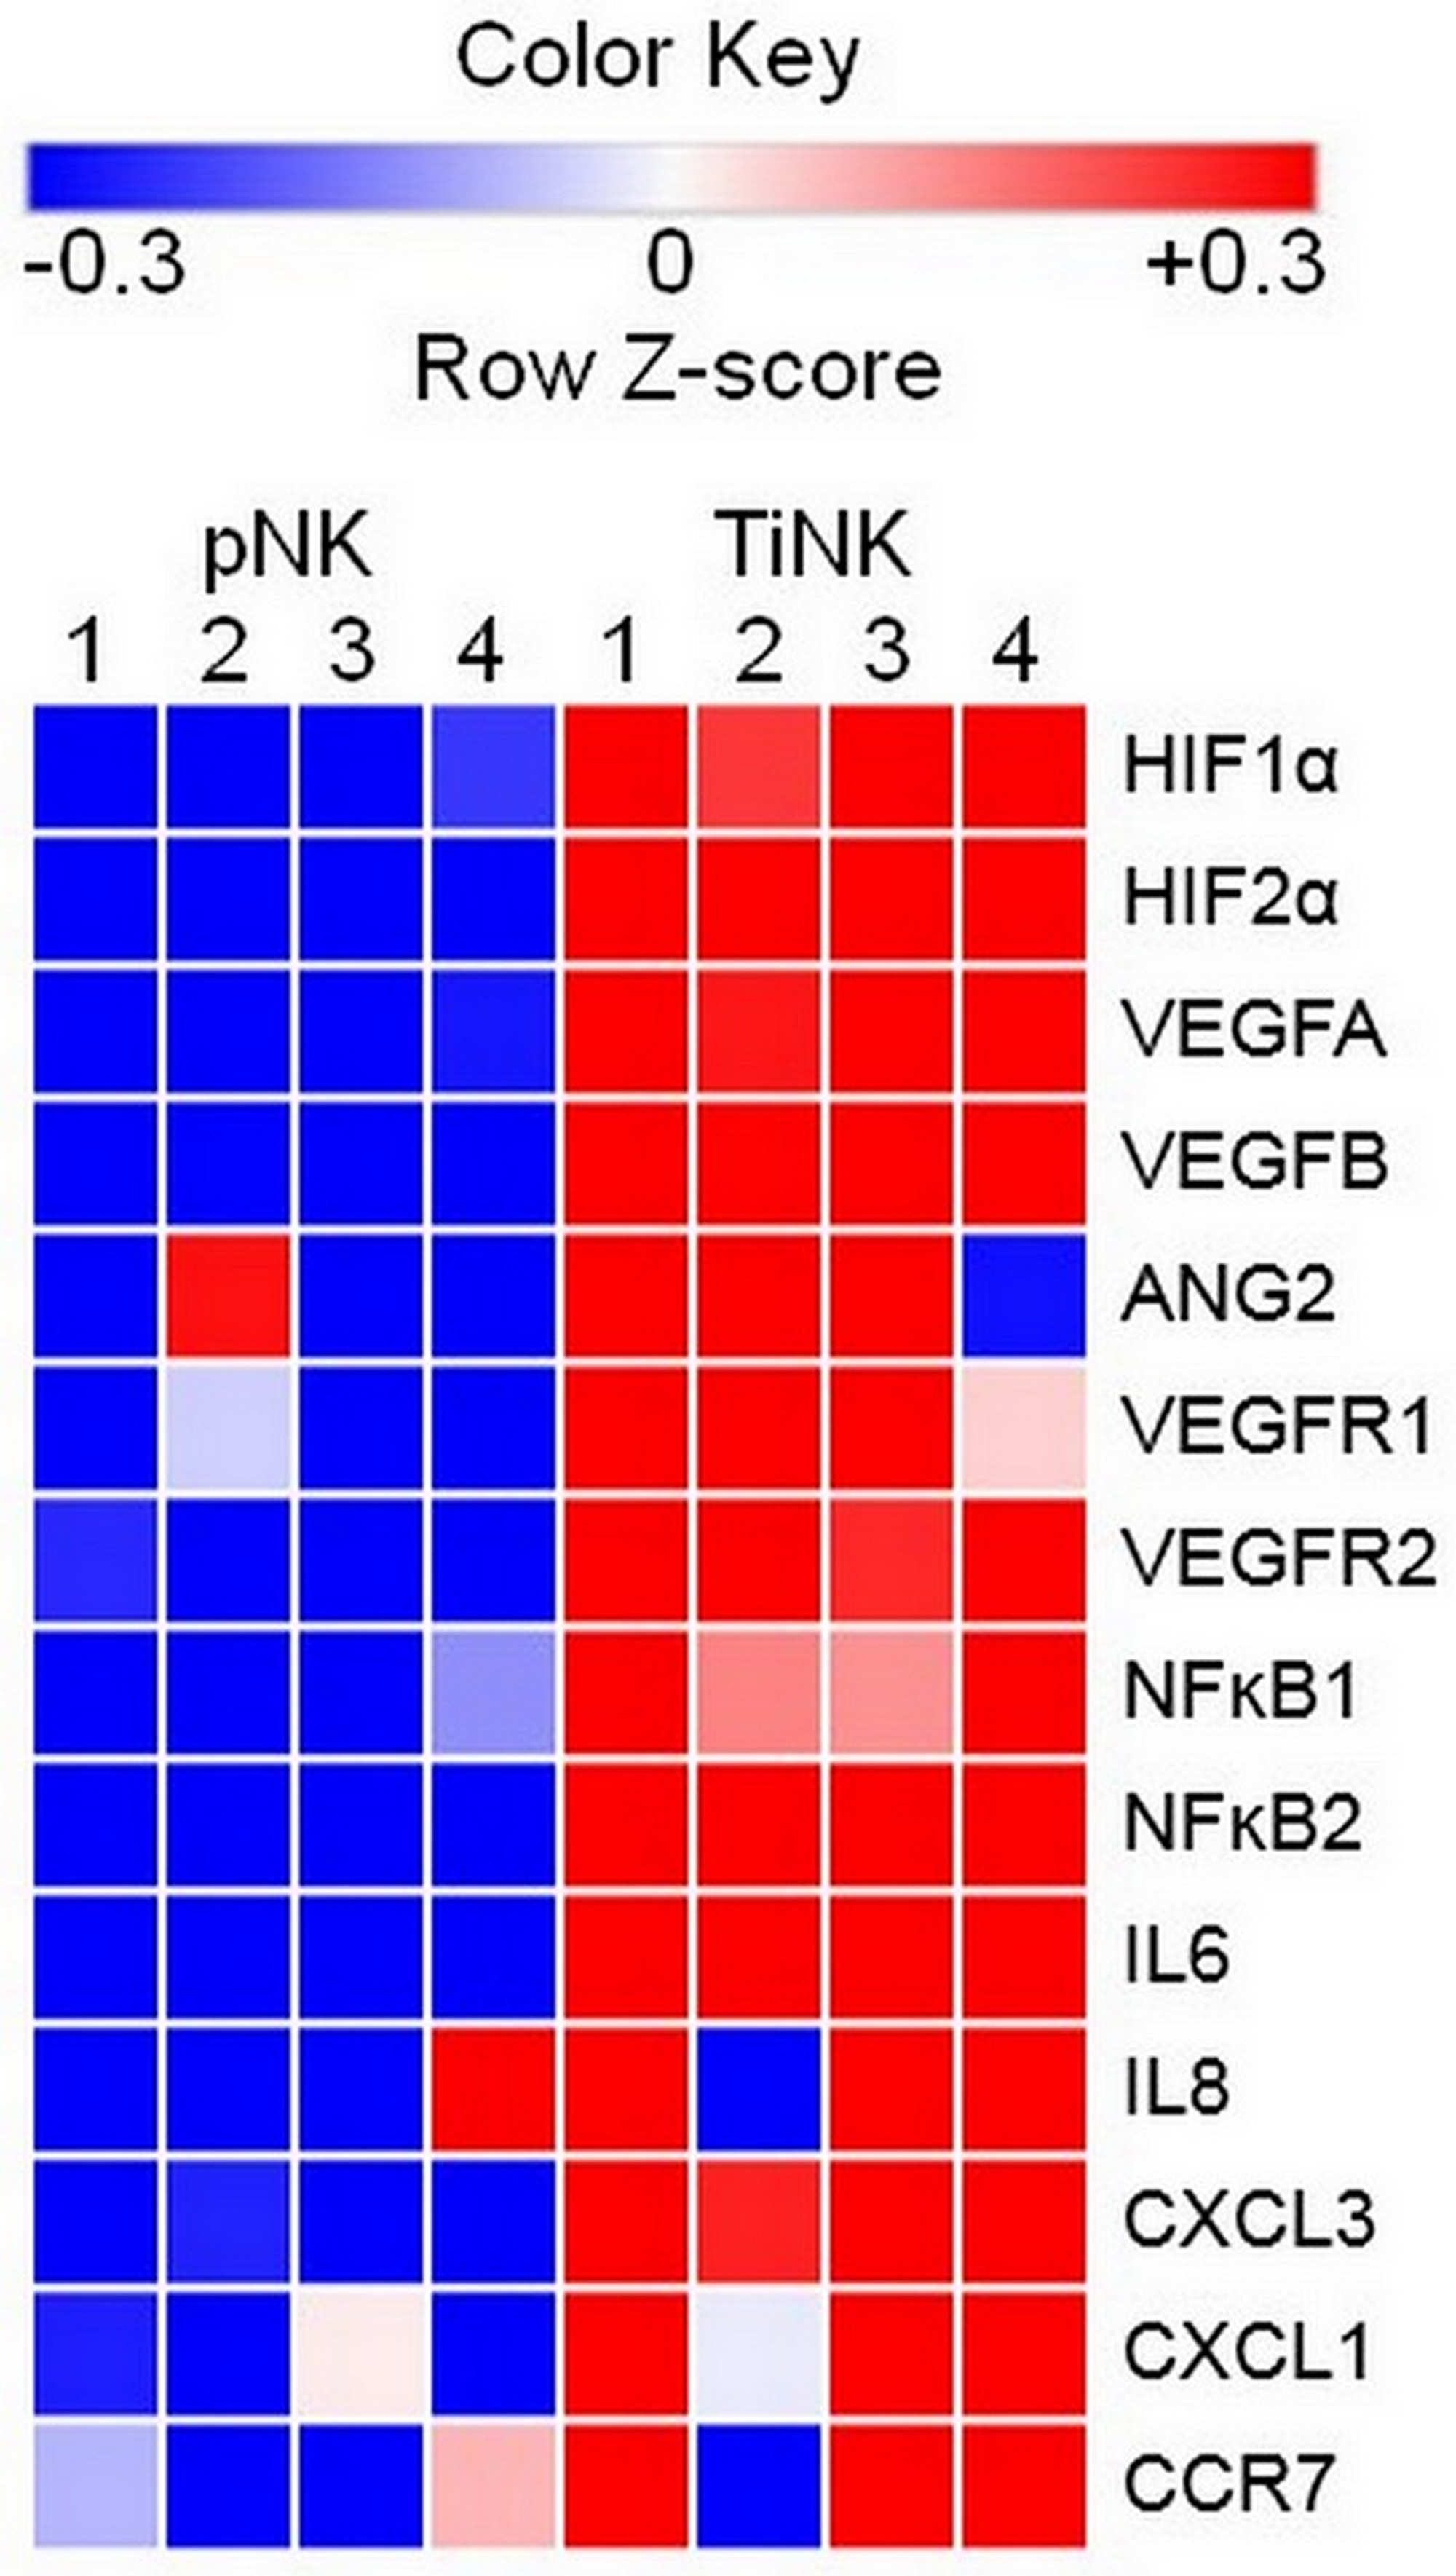 RCC TiNK cells have an altered transcriptional profiled compared to patient matched pNK cells.